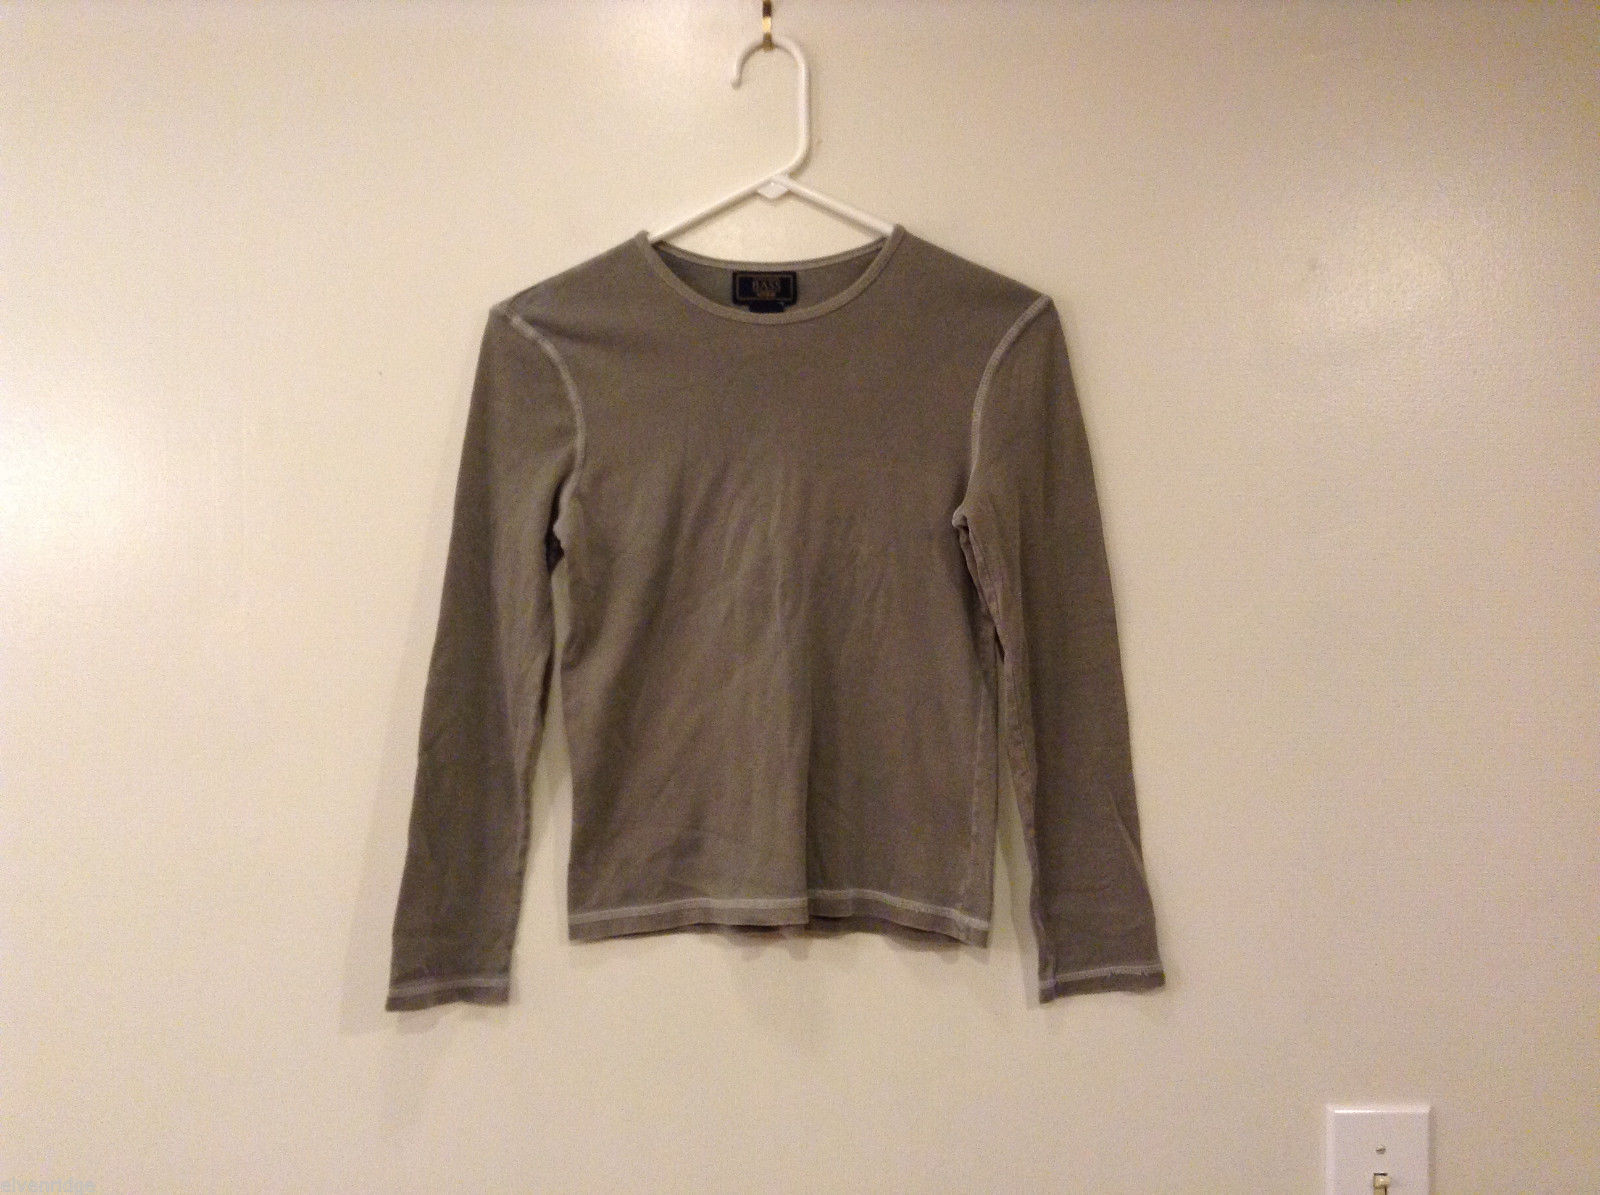 G.H. Bass & Co. Women Size S Gray T-Shirt Tee Top Long Sleeves Contrast Stitches